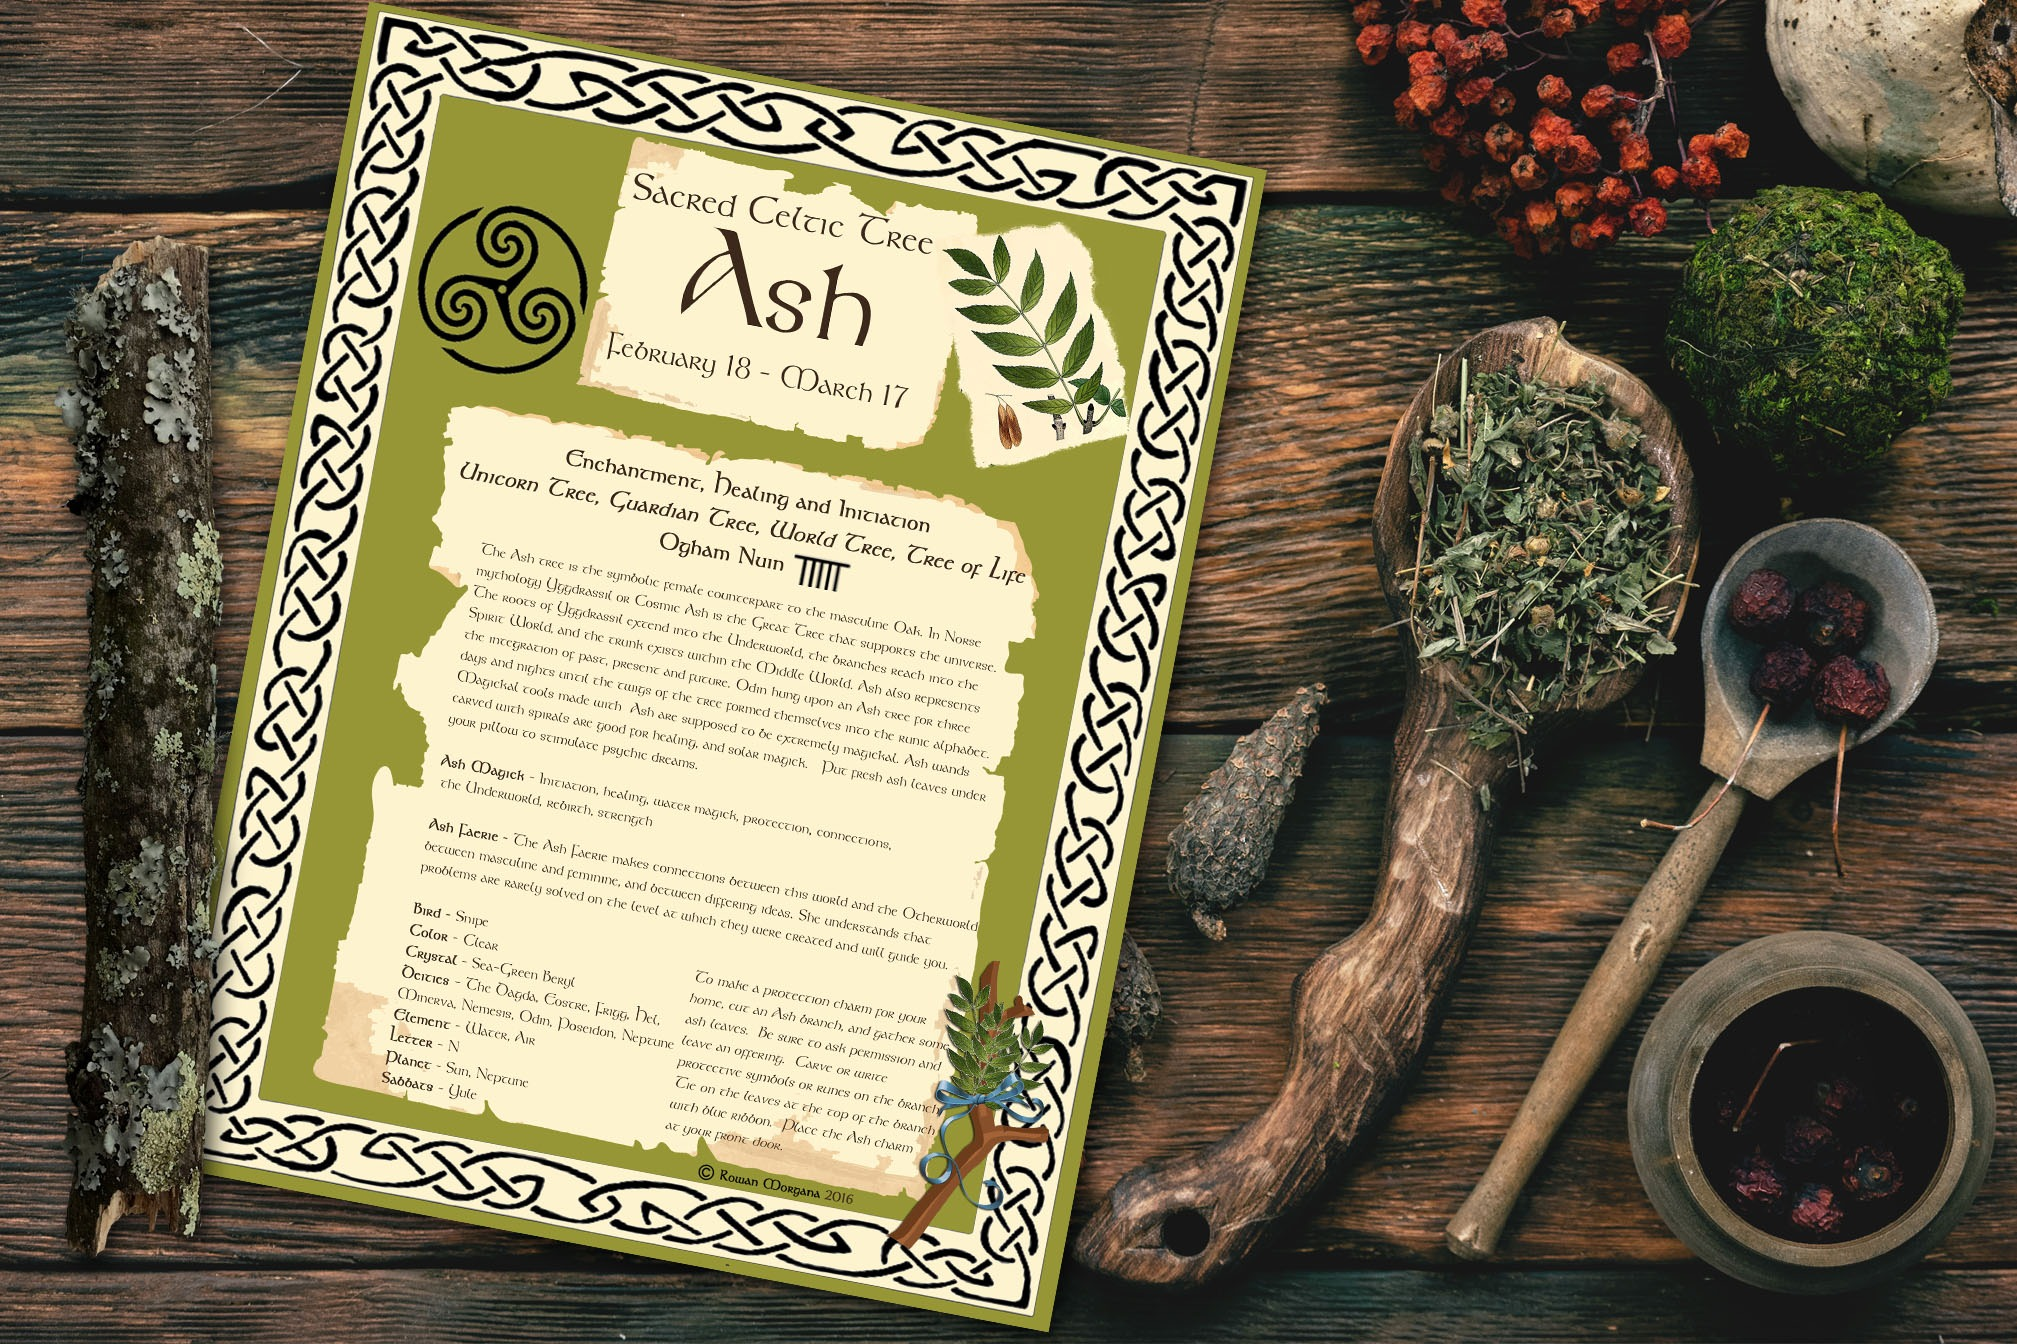 ASH CELTIC TREE